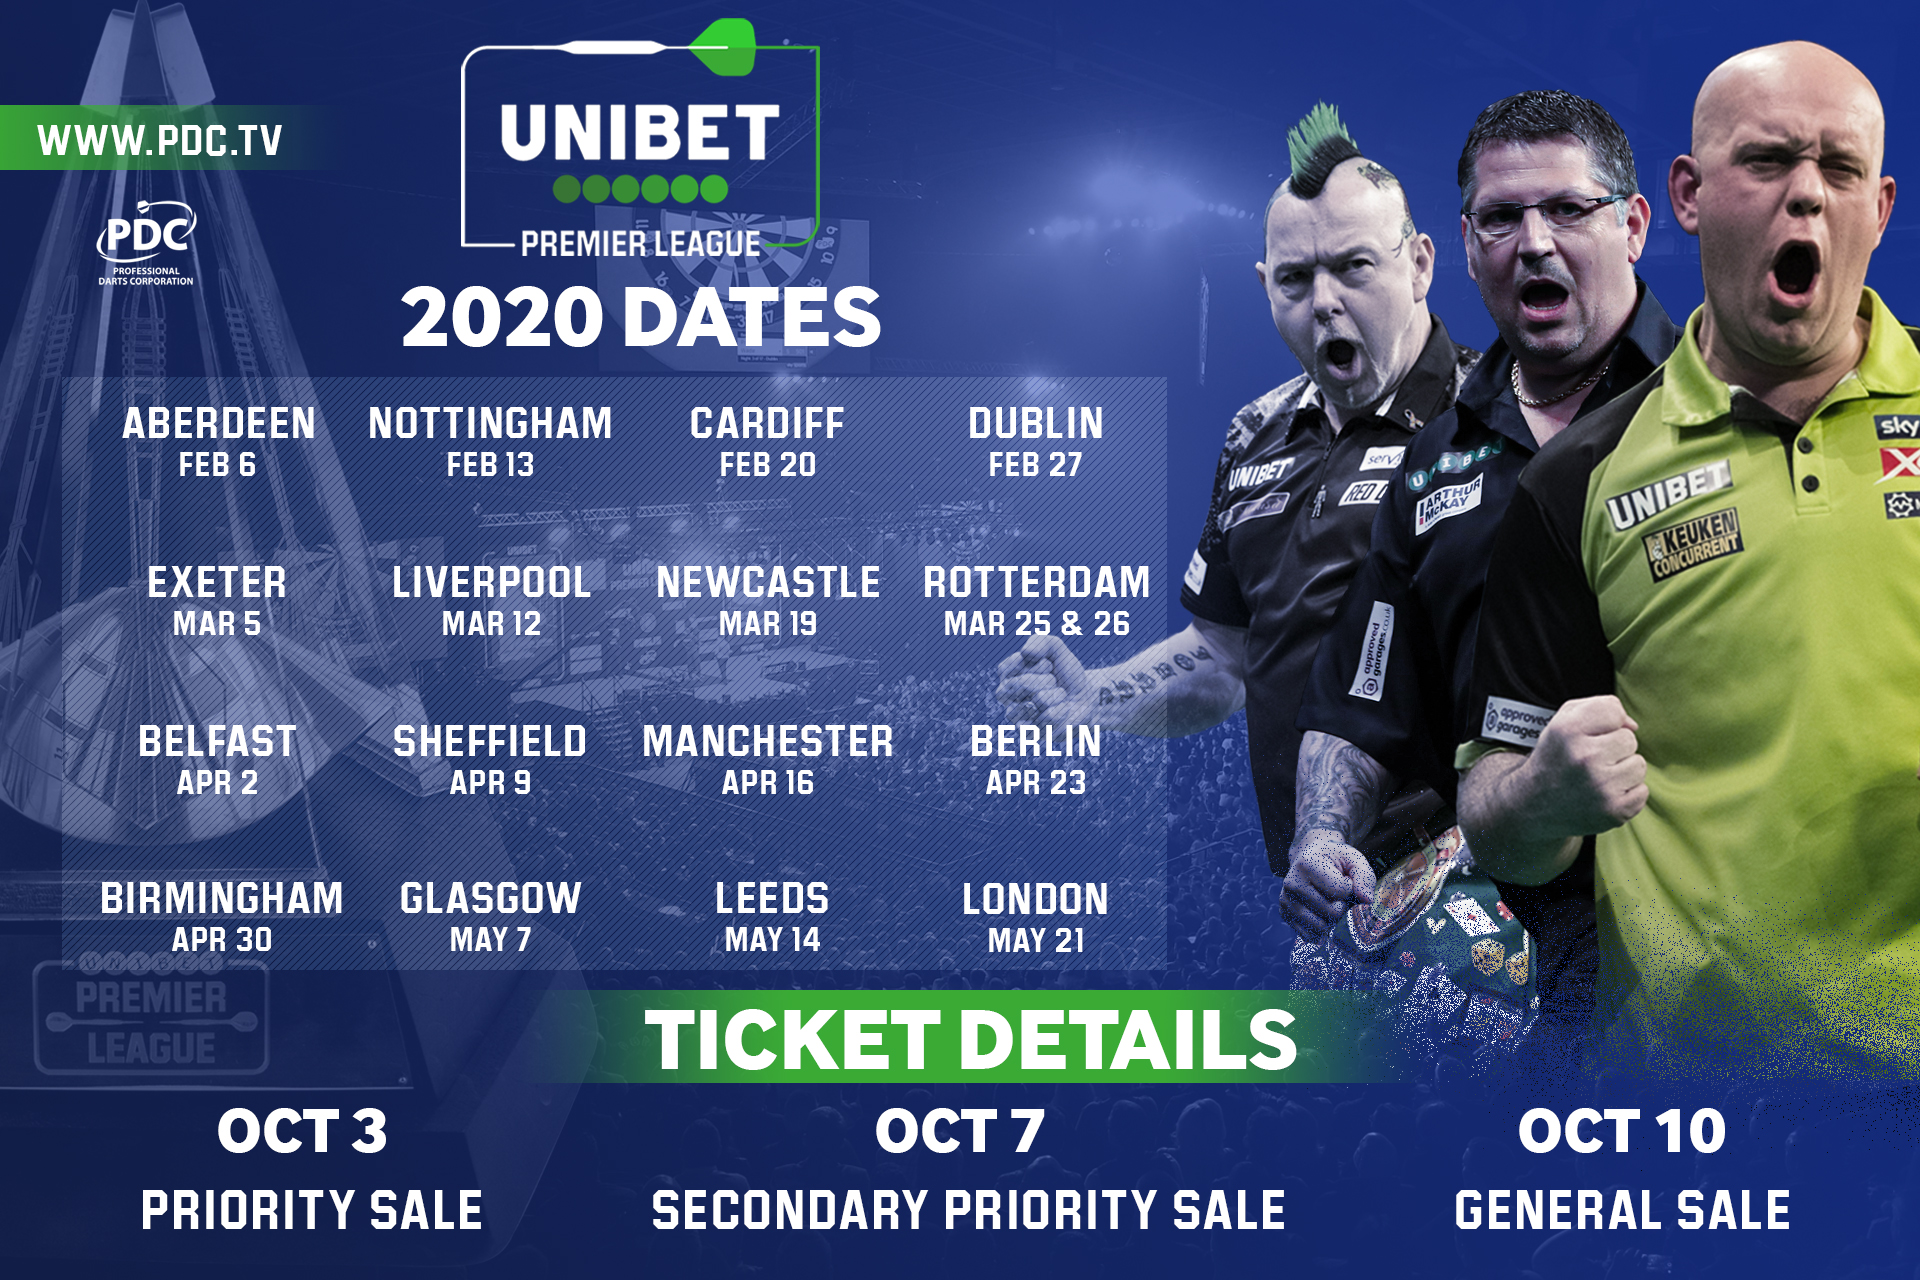 2020 Unibet Premier League dates (PDC)